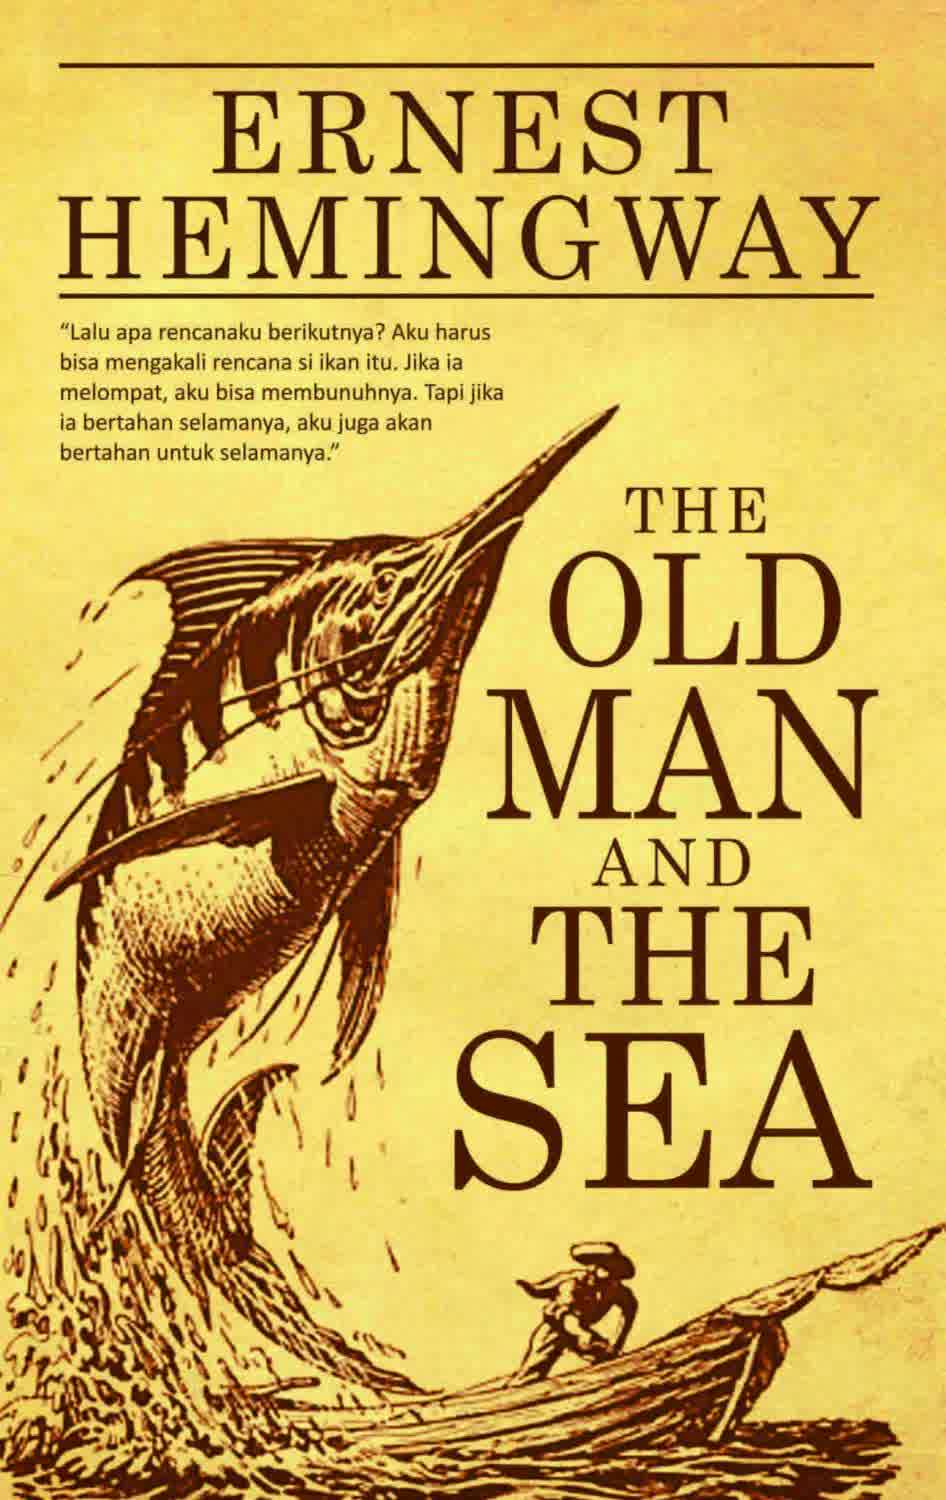 the macho man in the novel the old man and the sea by ernest hemingway